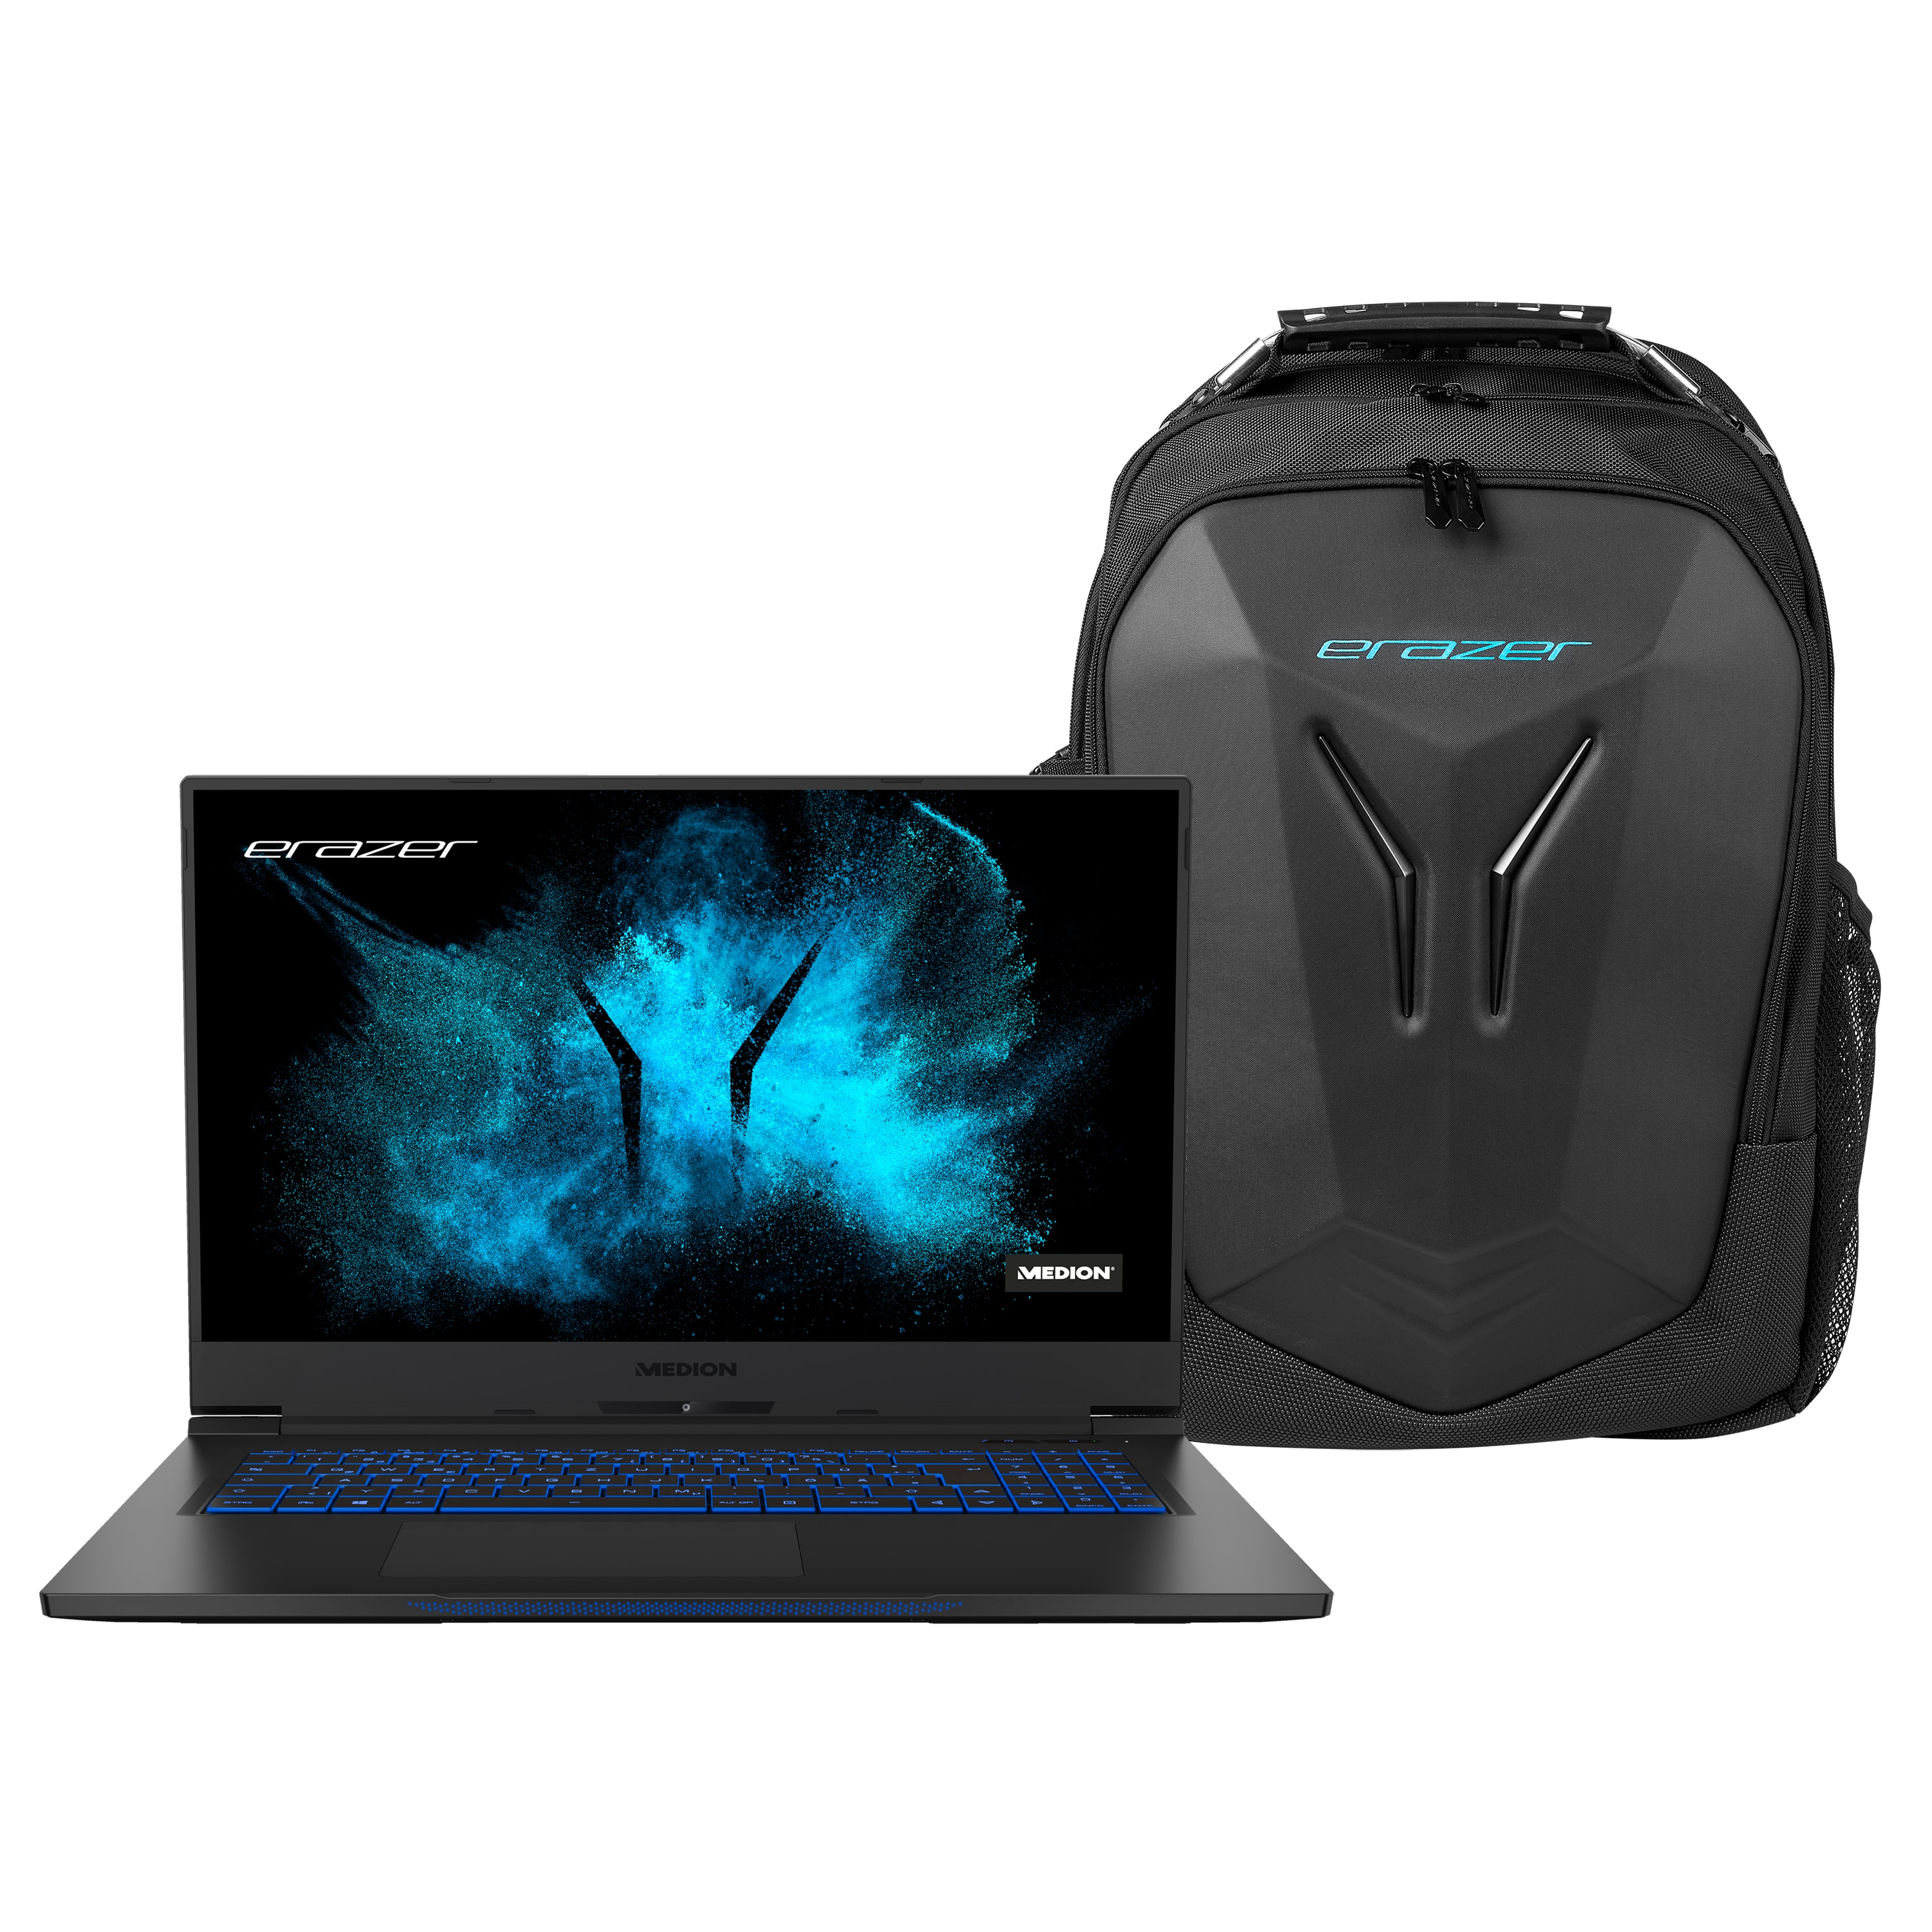 MEDION® Offre combinée ! ERAZER Beast X10 | Intel Core i7 | Windows10Famille | GeForce RTX 2070 Super | 17,3 pouces Full HD | 32 Go | 1 To SSD & X89077 Sac à dos Gaming